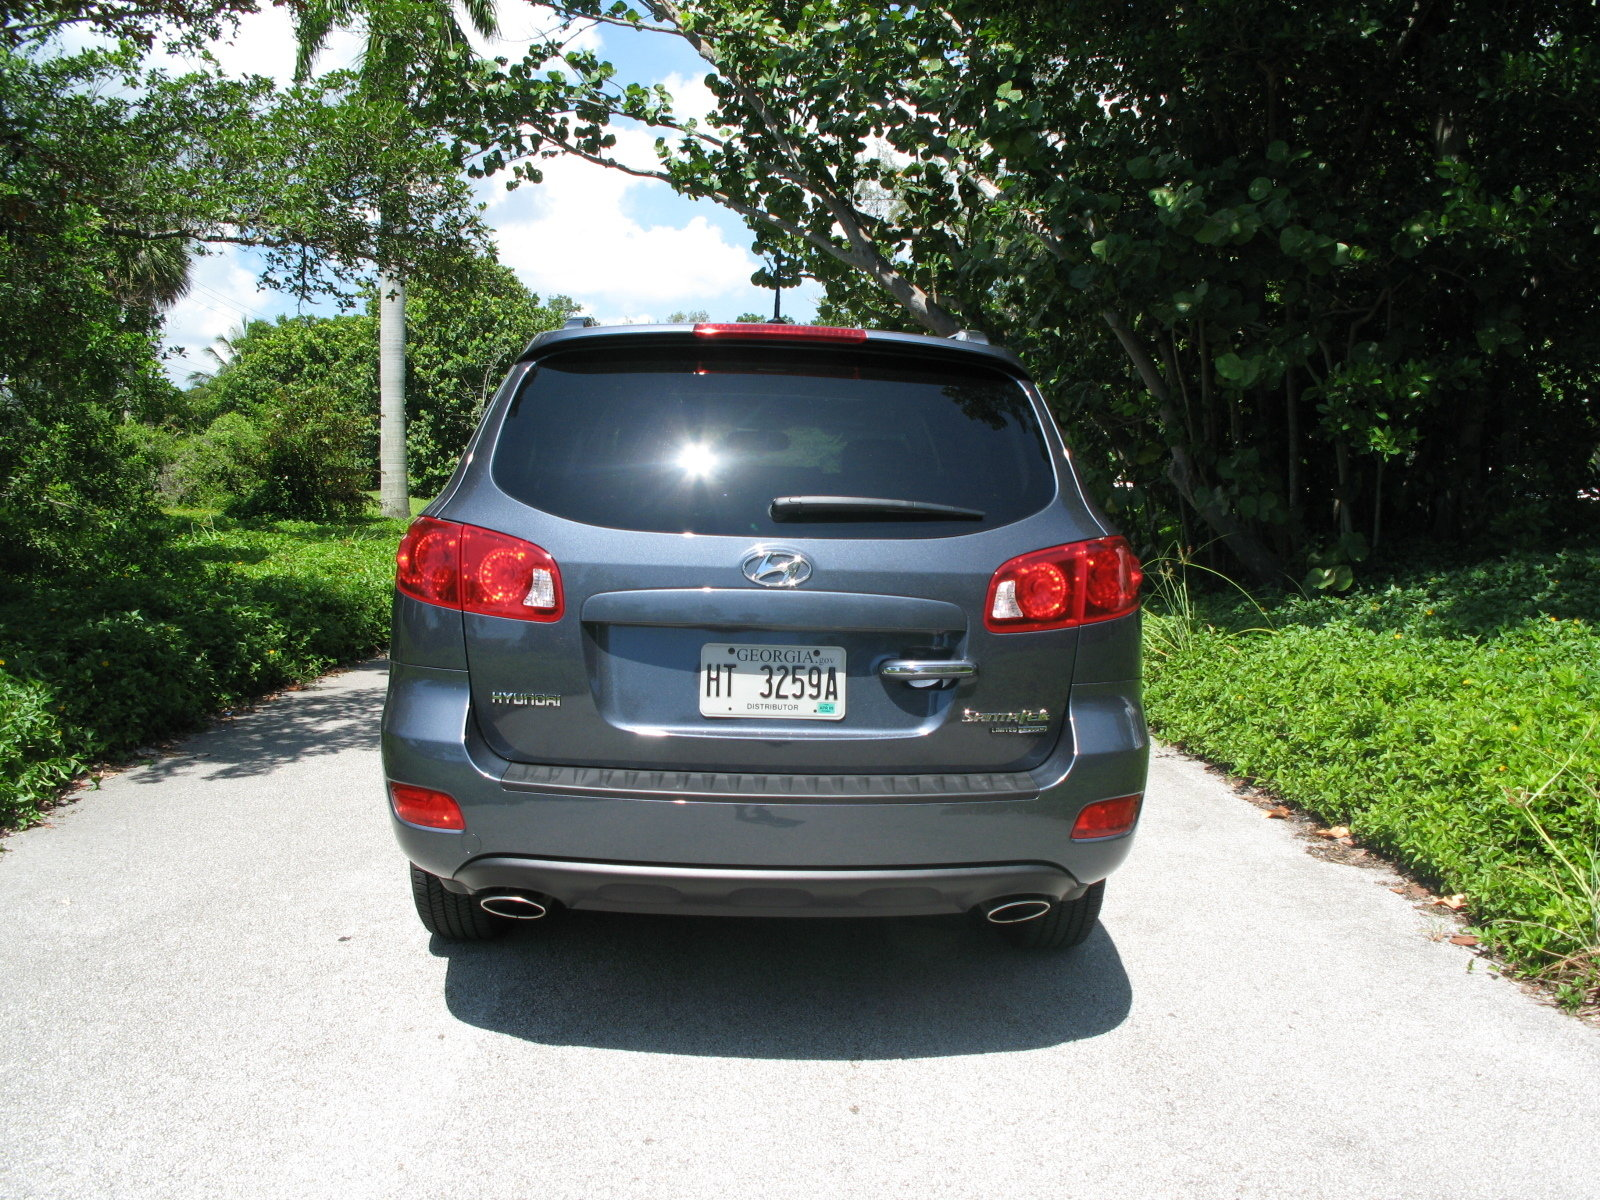 2008 hyundai santa fe limited awd picture 261829 car review top speed. Black Bedroom Furniture Sets. Home Design Ideas